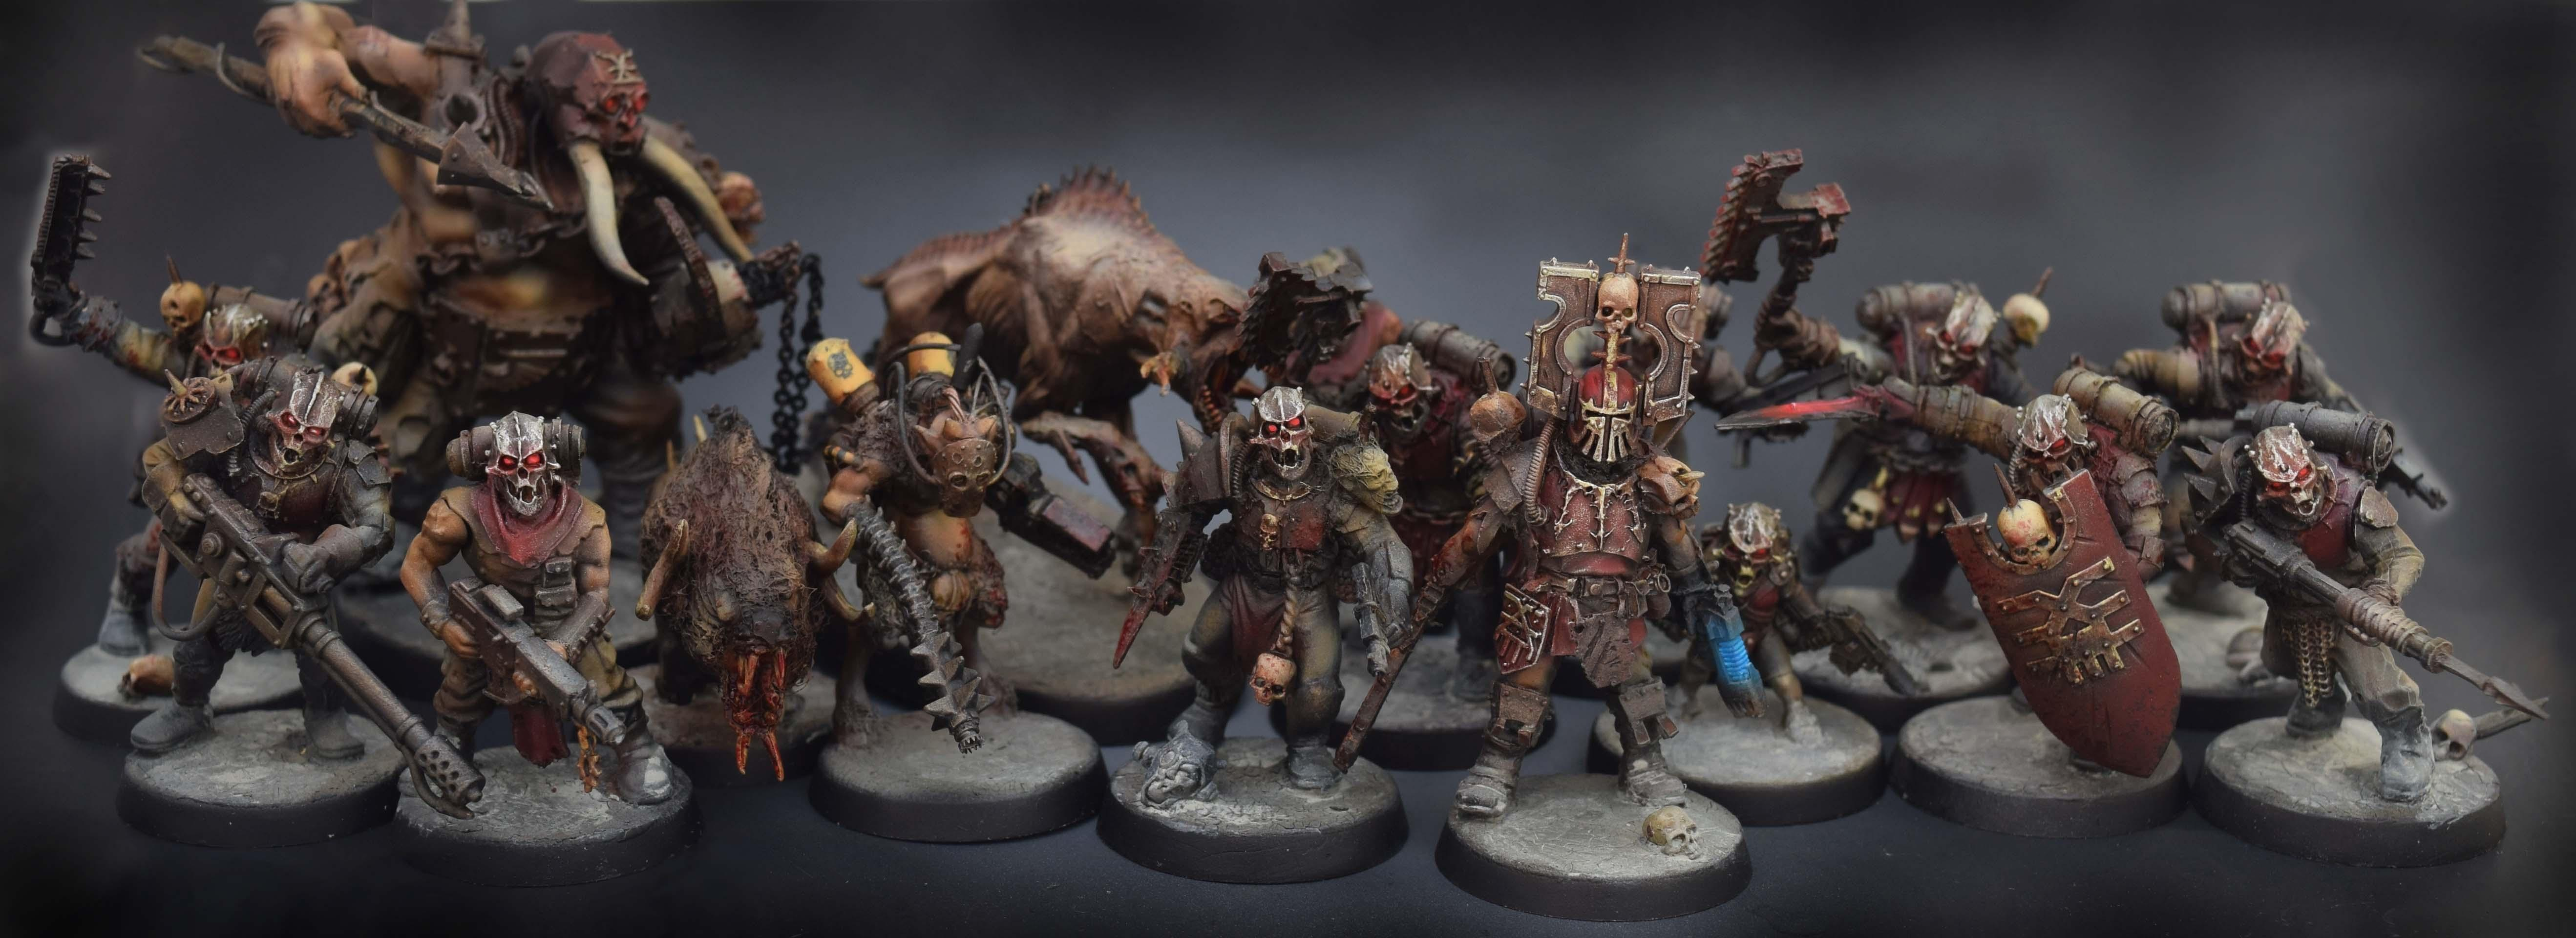 Cultists, Khorne